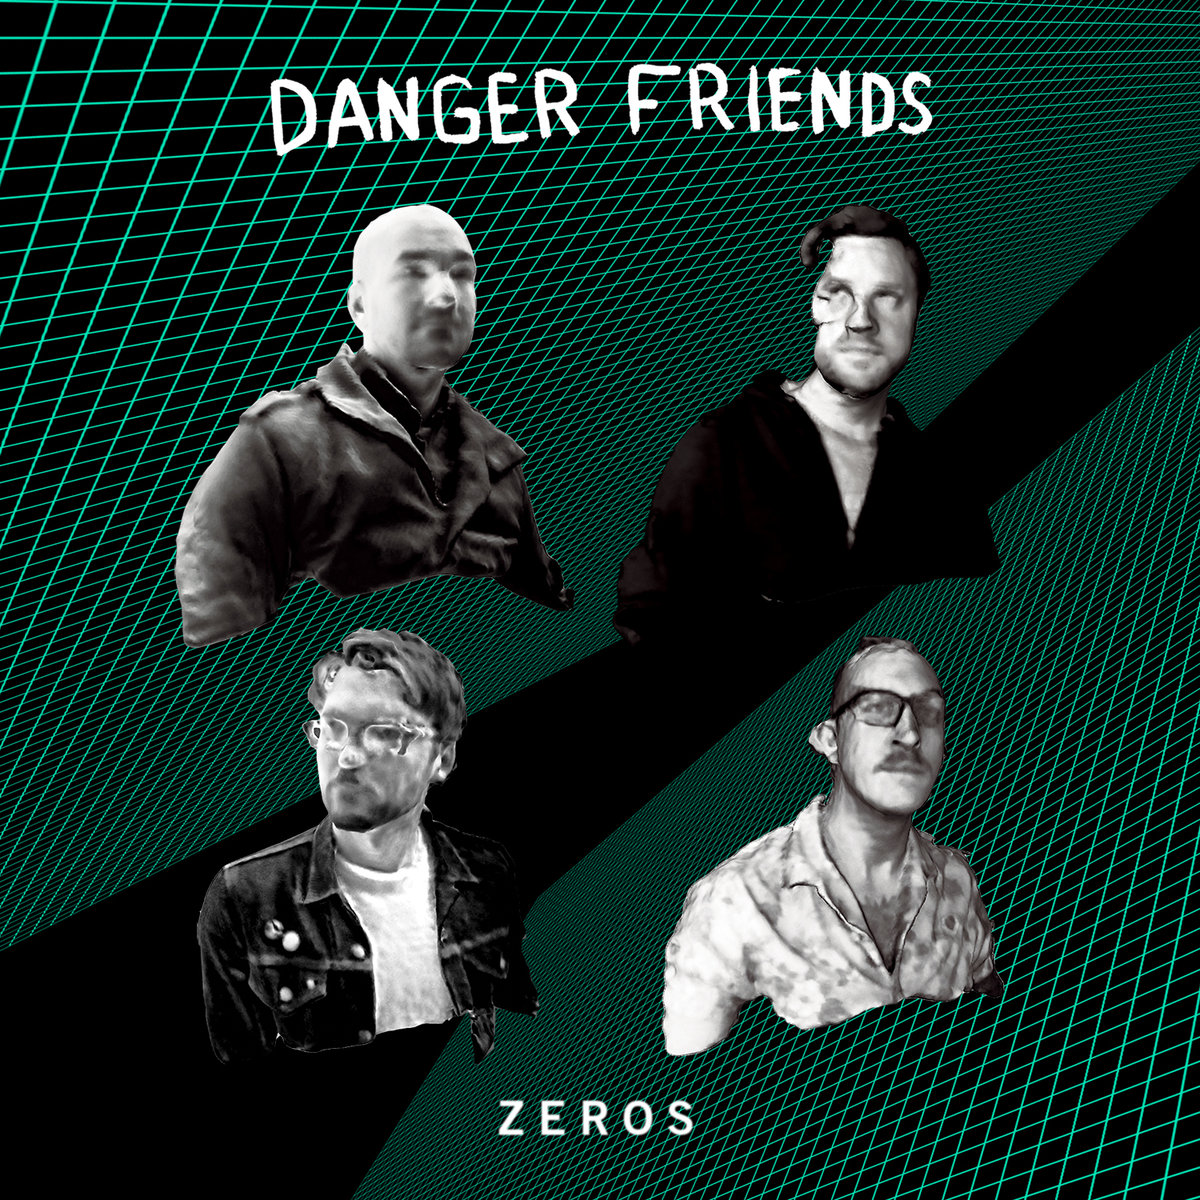 Danger Friends Zeros